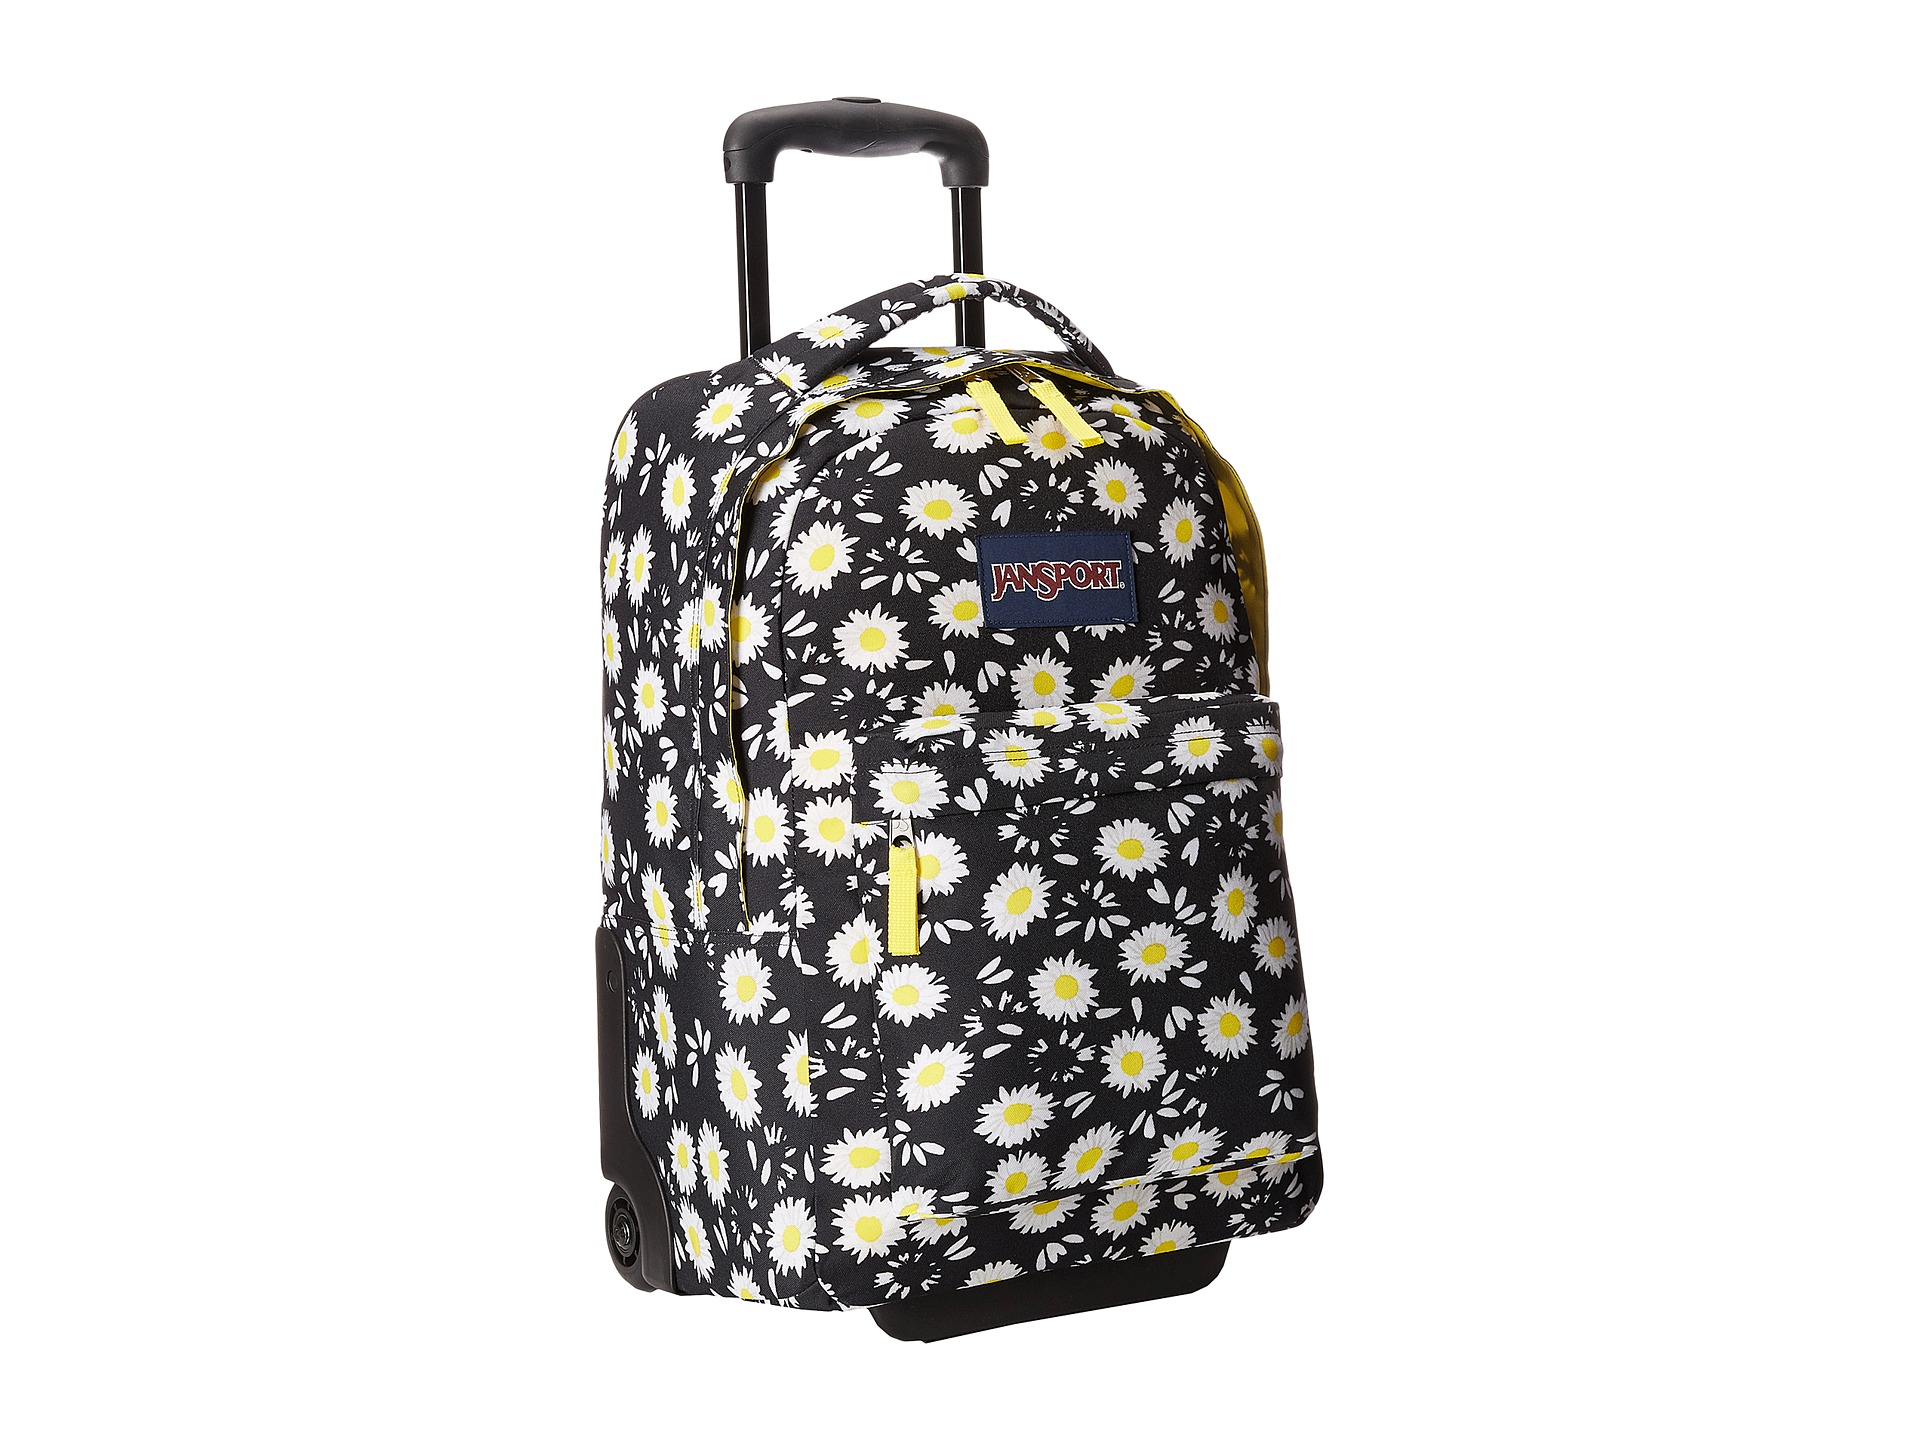 Jansport Wheeled Backpack - Crazy Backpacks